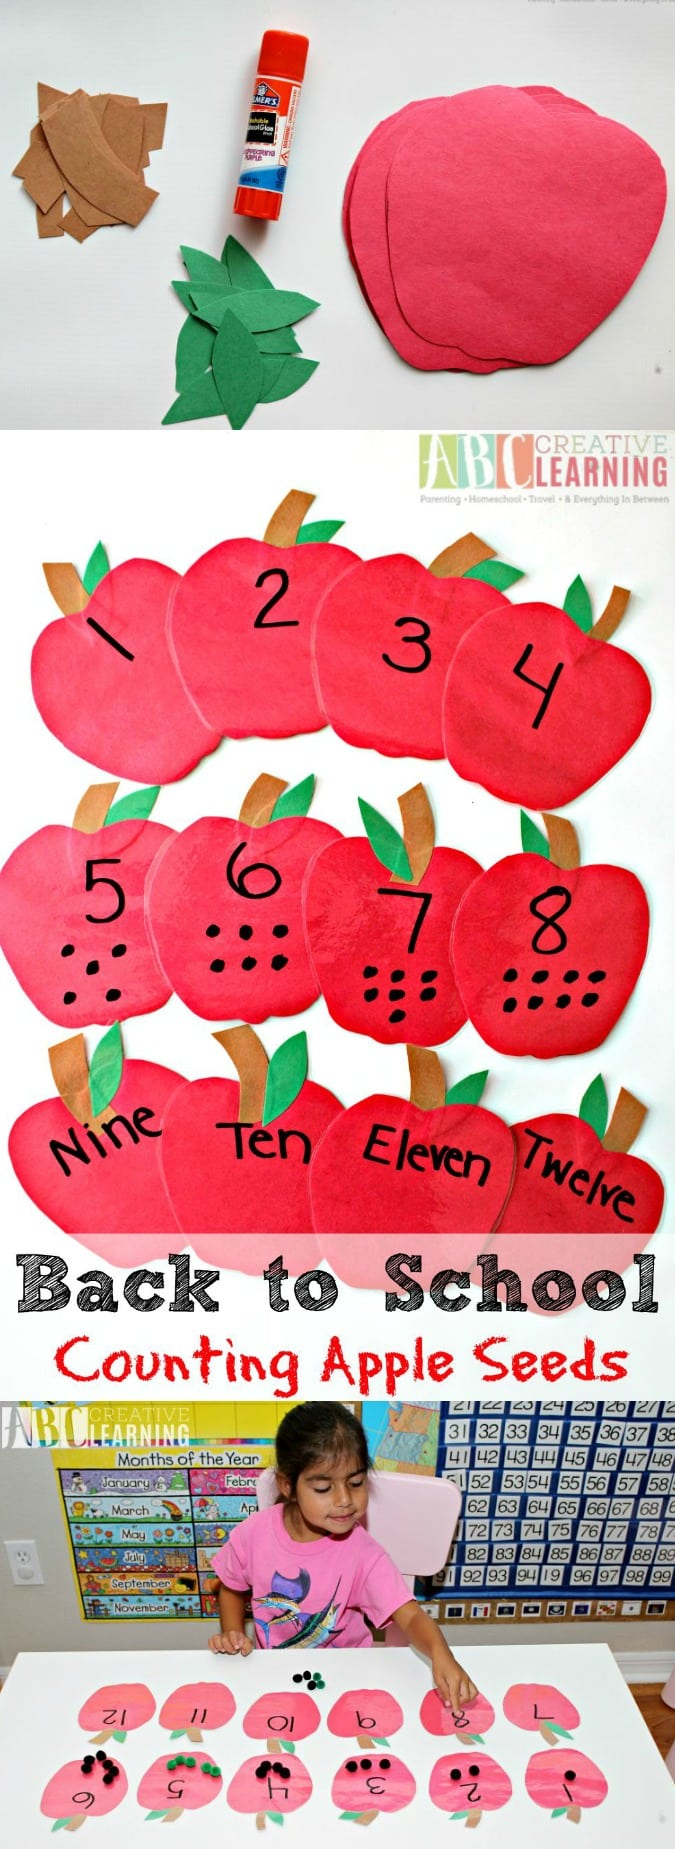 Back To School Counting Apple Seeds - simplytodaylife.com